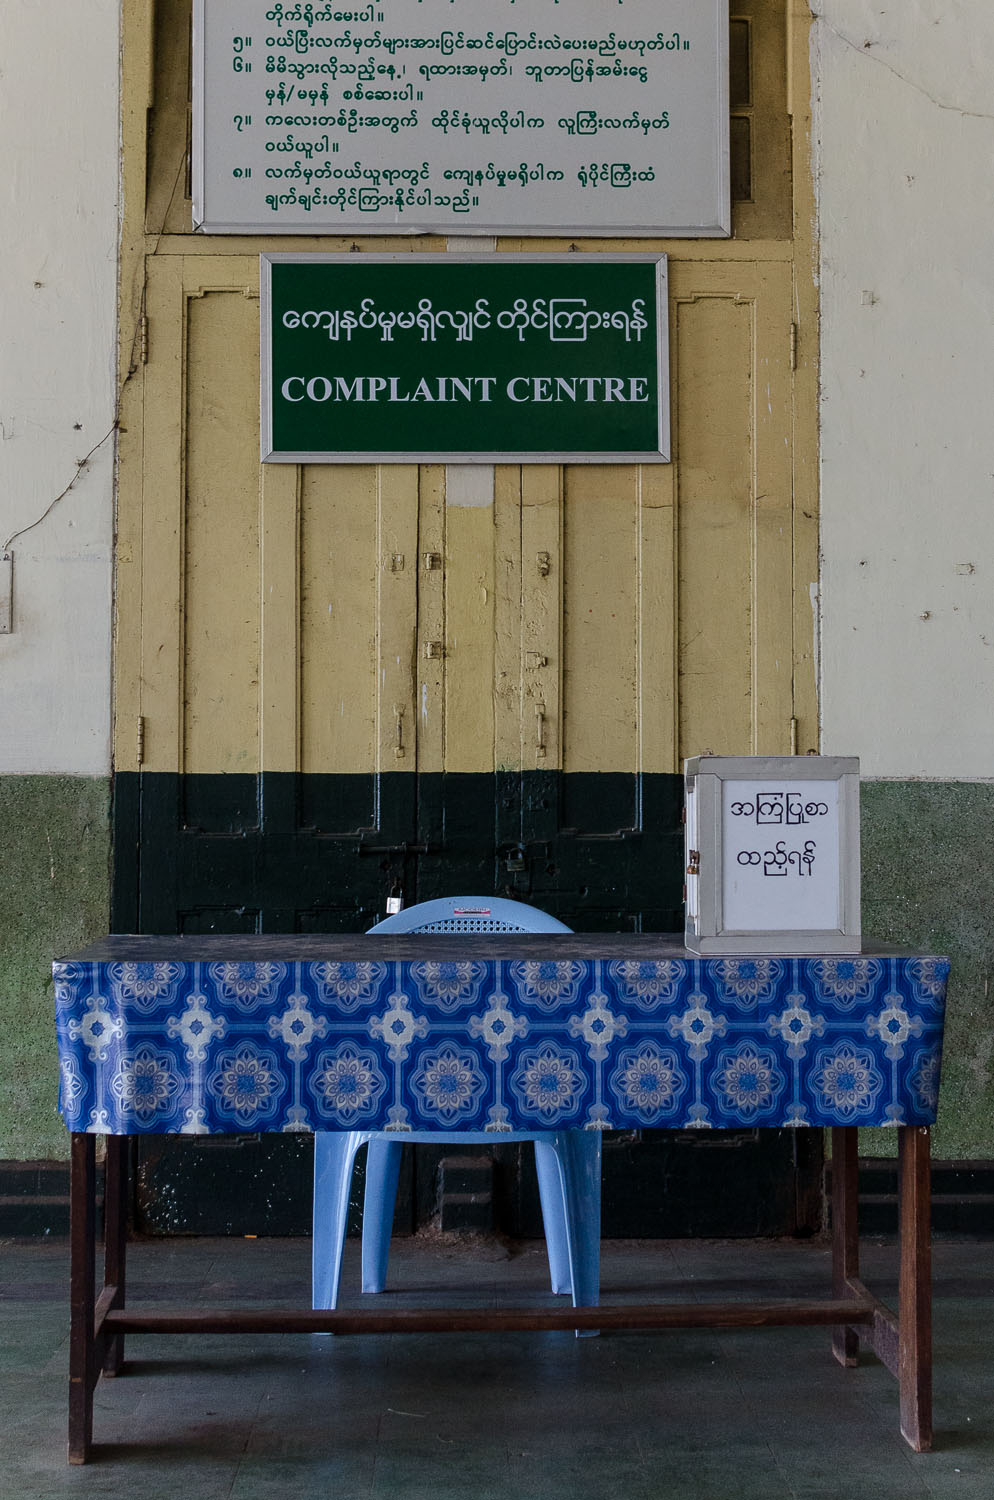 Well staffed complaint station in the Yangon railway station.